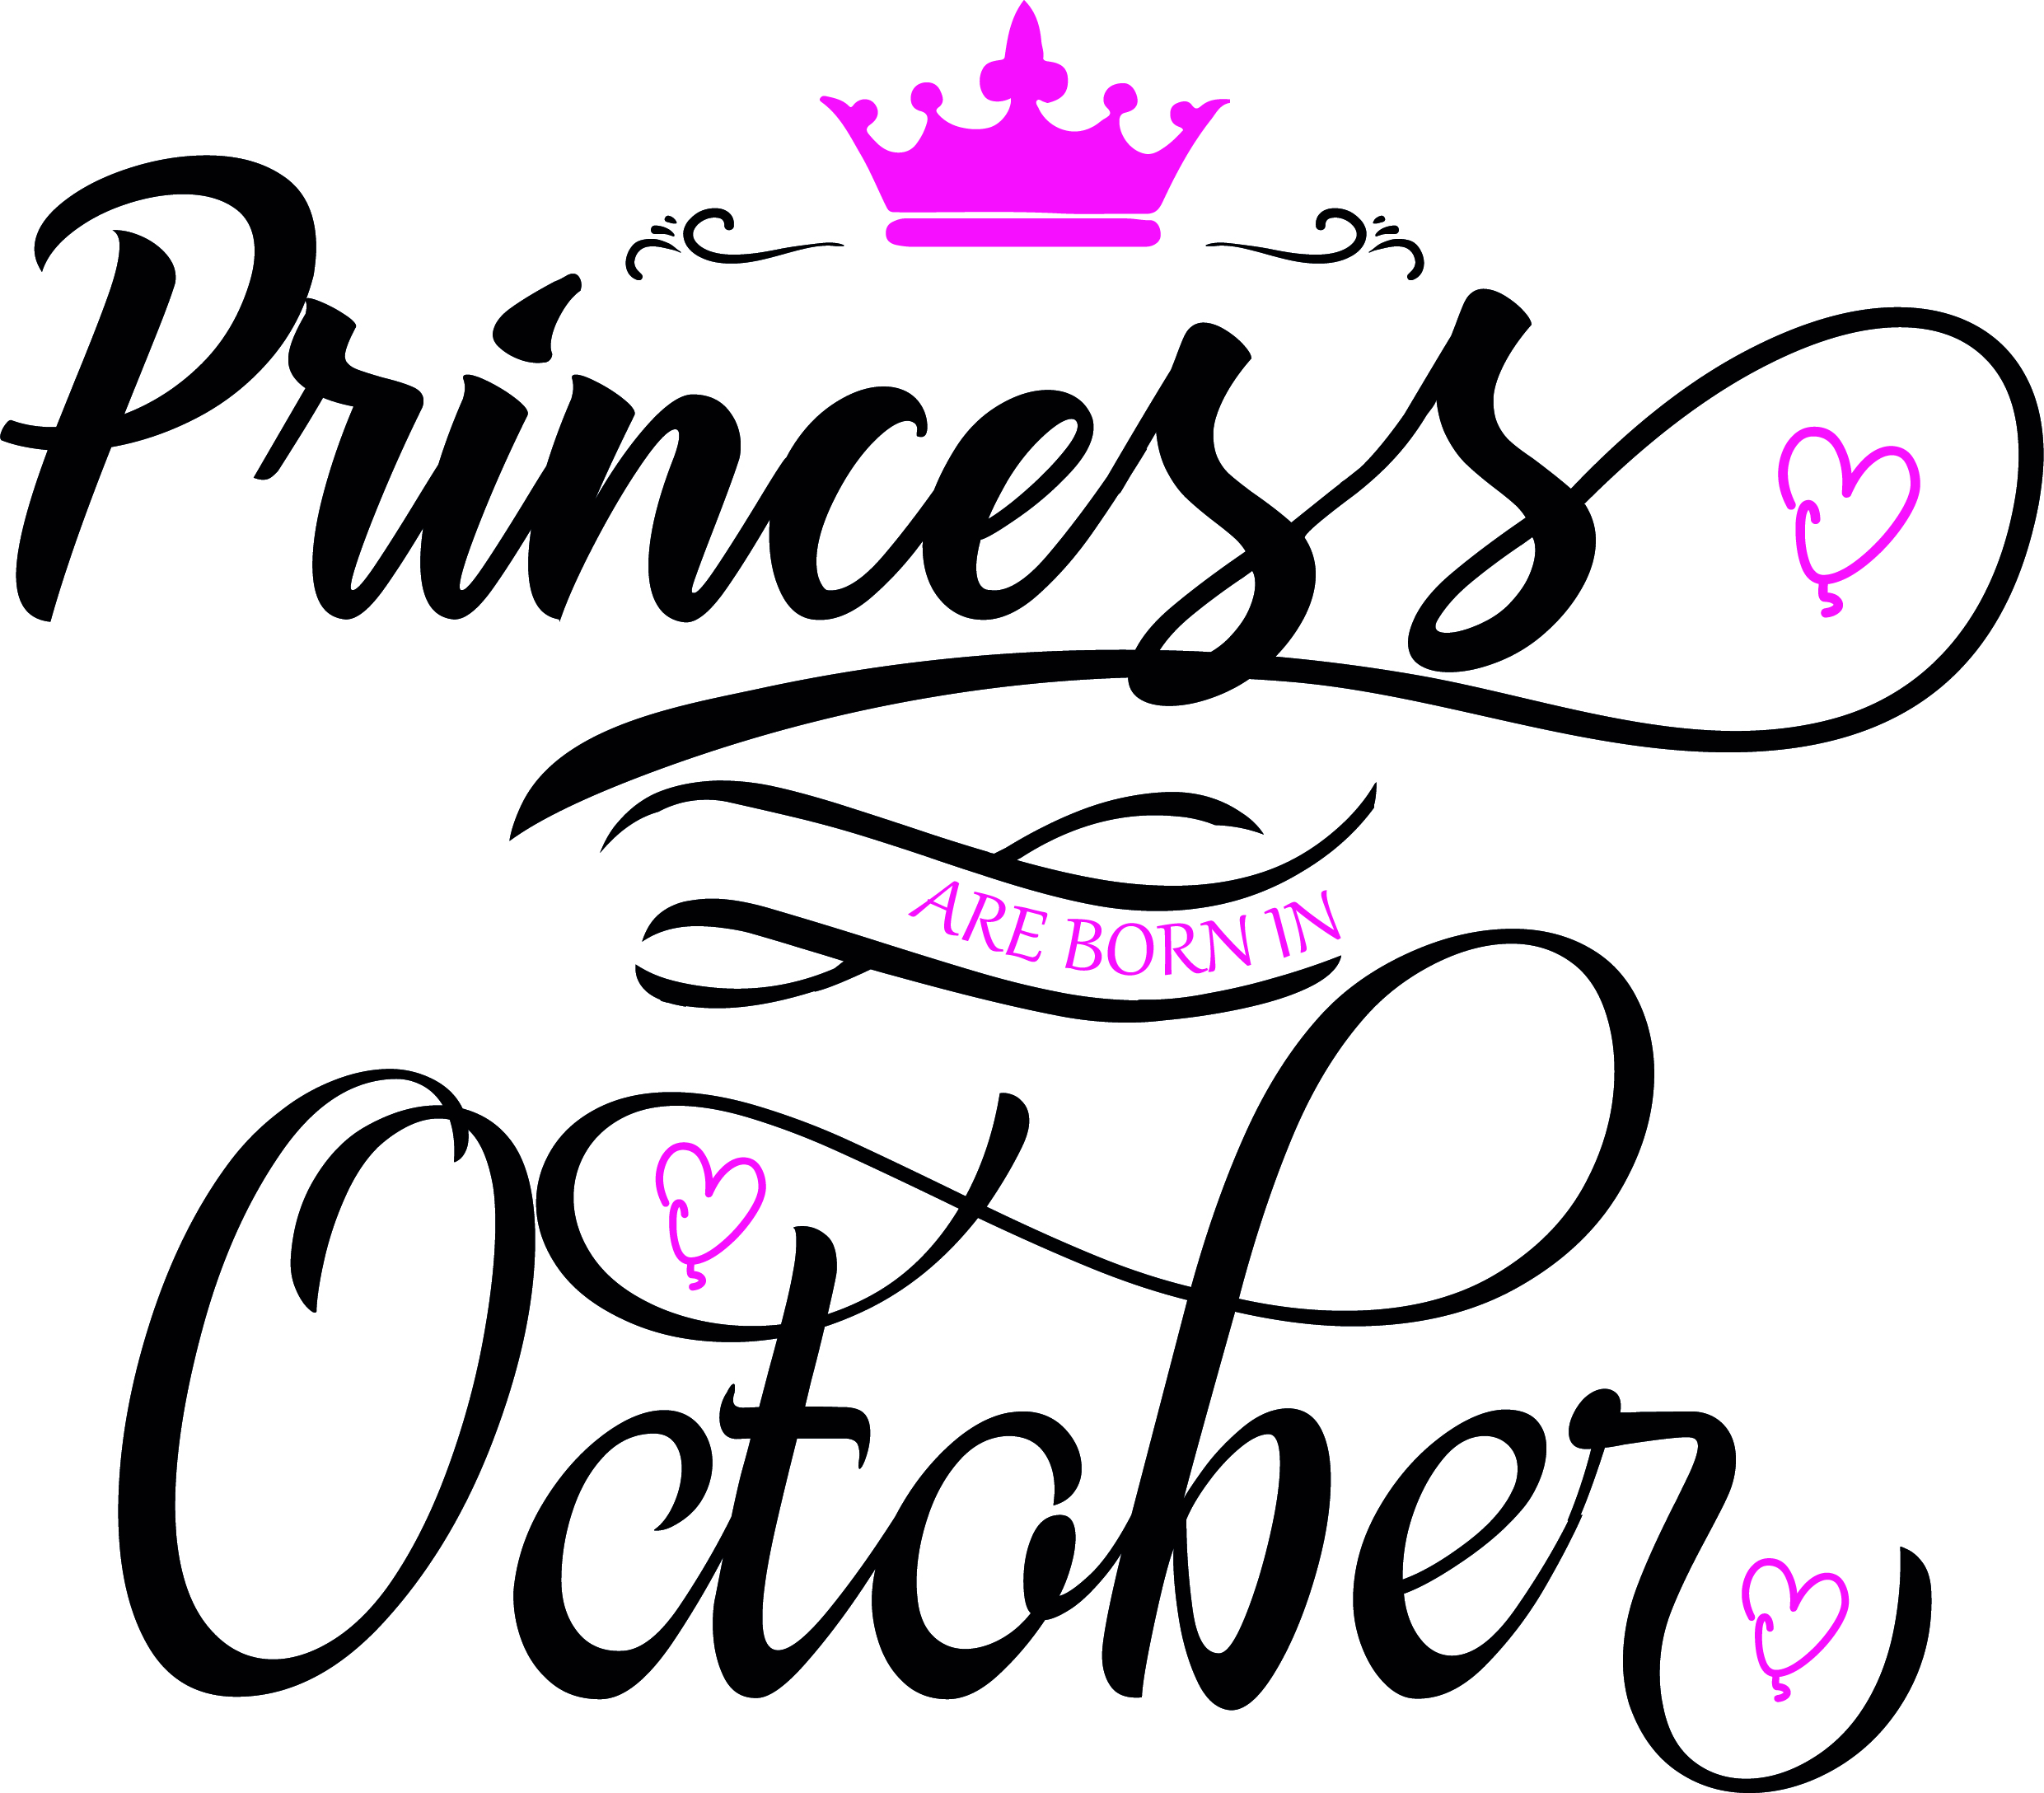 Princess are born in October  Svg,Dxf,Png,Jpg,Eps vector file example image 2